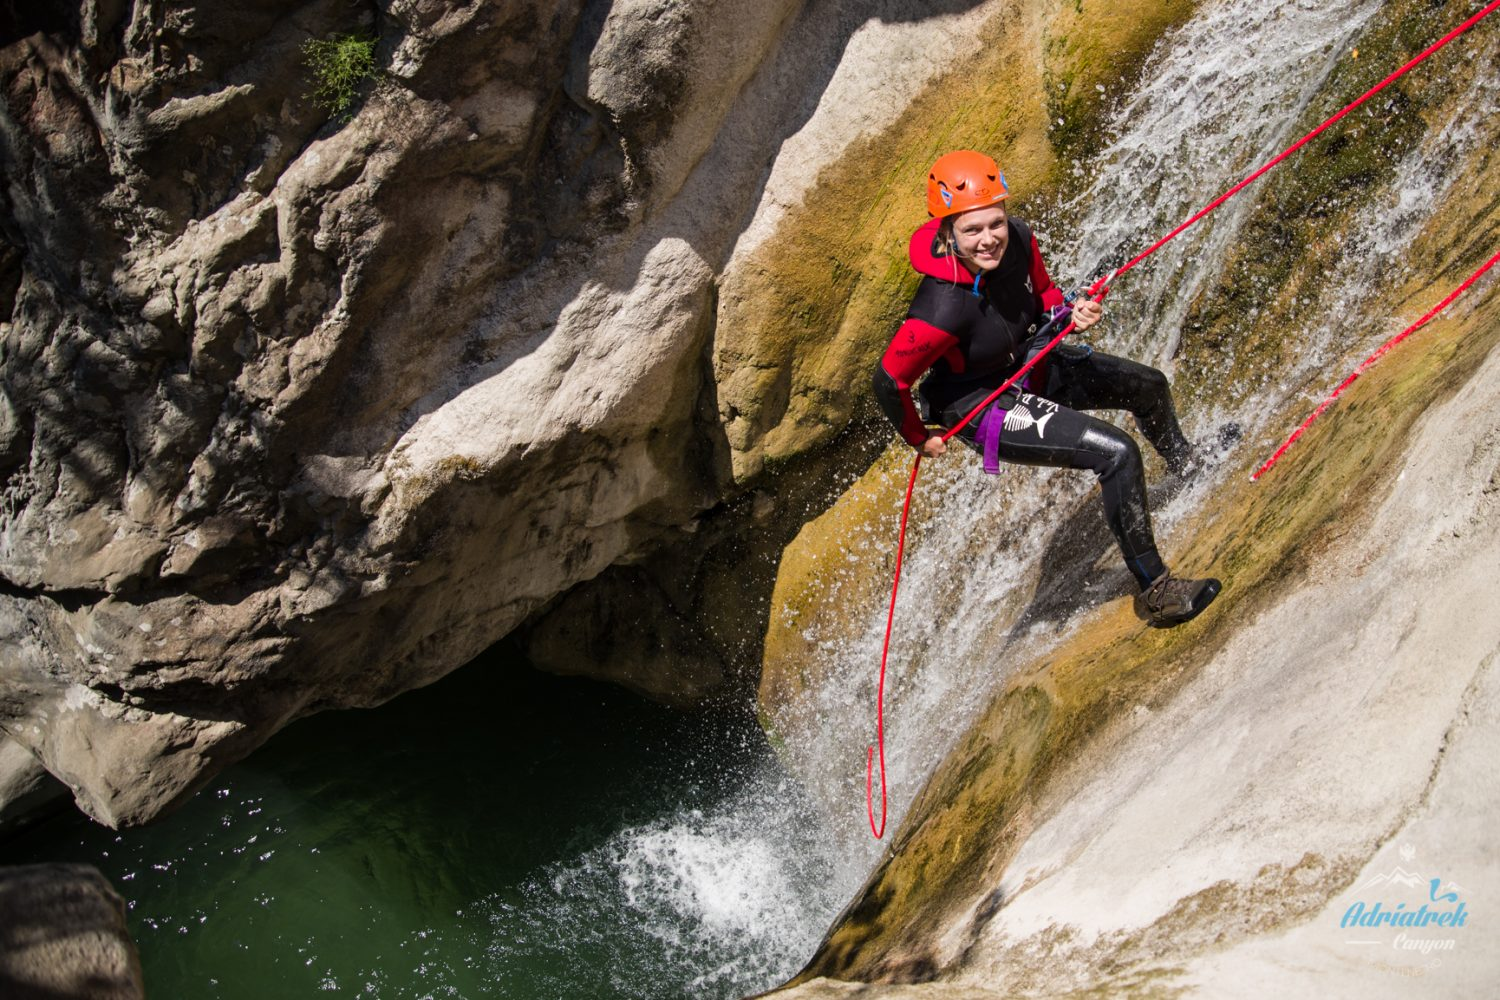 Abseil with smile and style